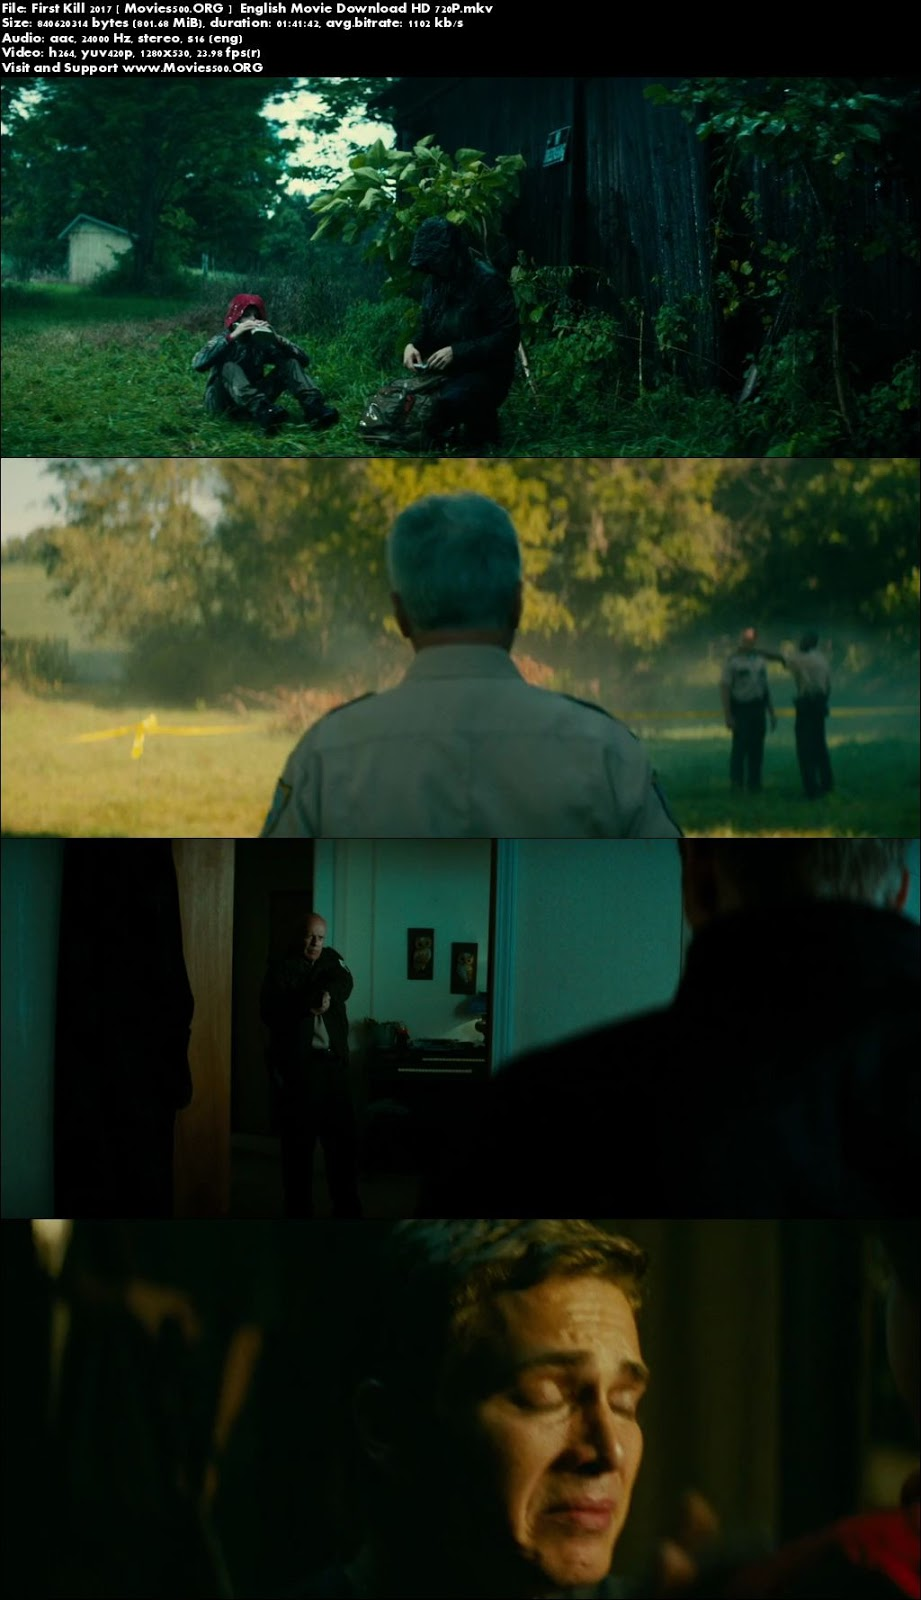 First Kill 2017 English Movie Download WebDL at sweac.org